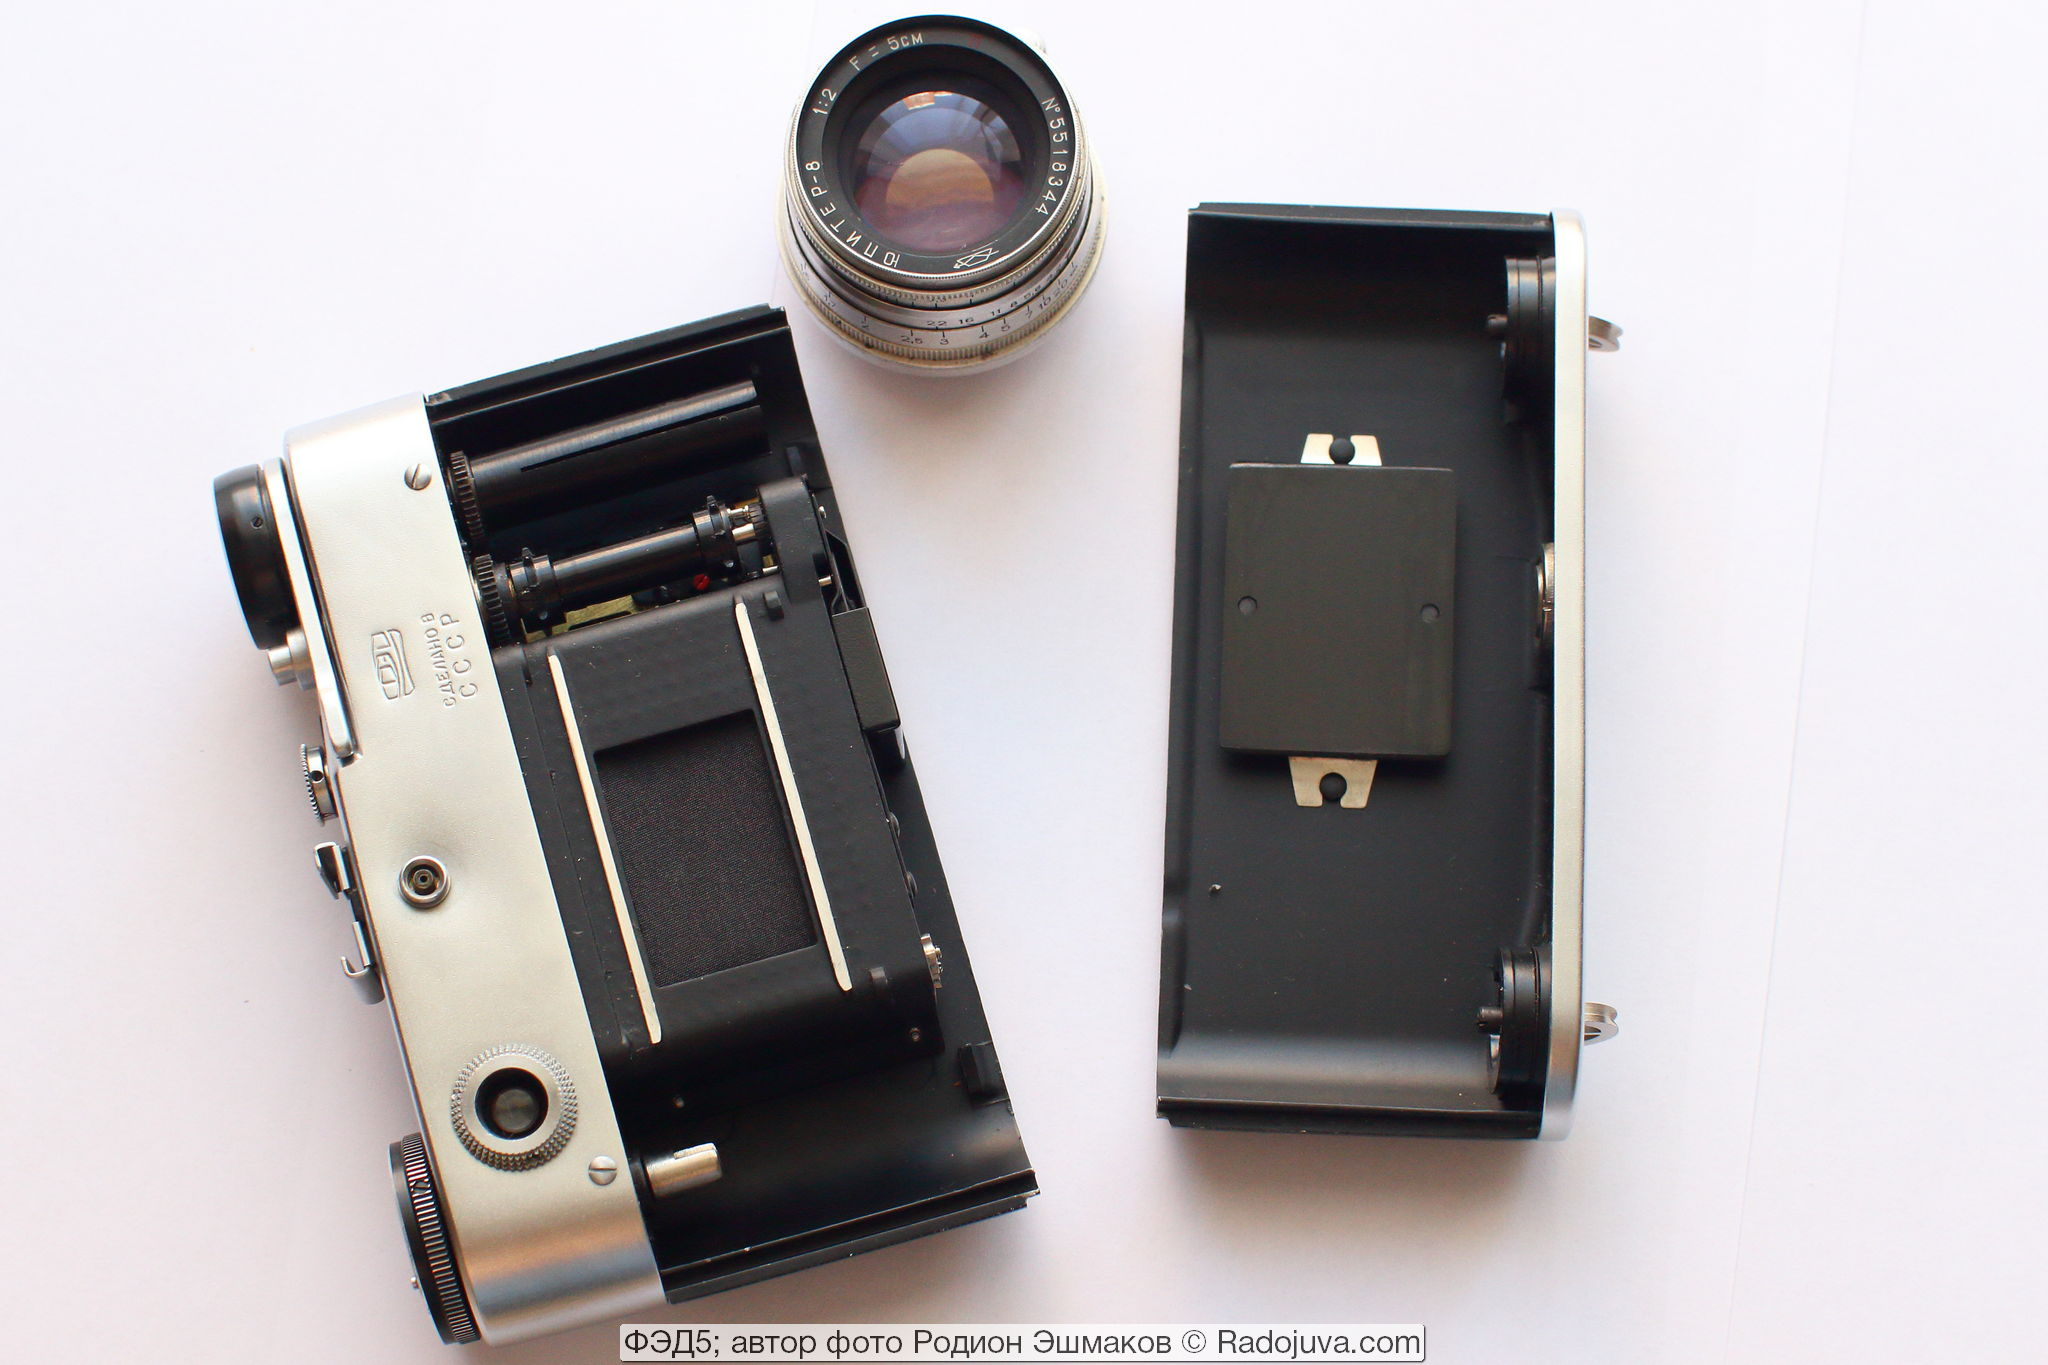 FED-5 with the back cover and lens removed